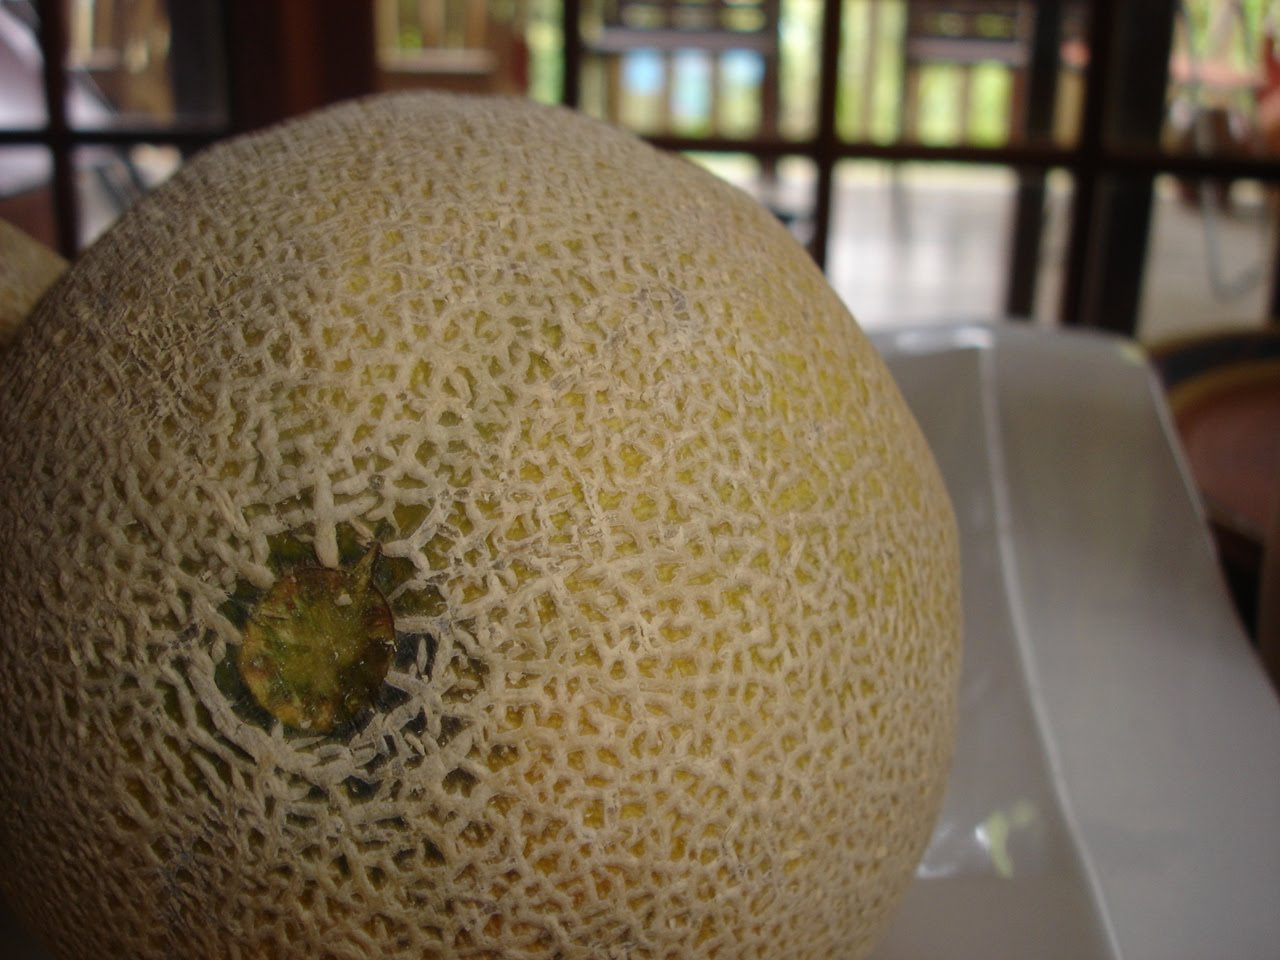 A Singaporean Uncle In Australia What Do You Look For When Selecting A Rockmelon To Make Sure It Is Good Inside Step by step easy to follow. a singaporean uncle in australia blogger